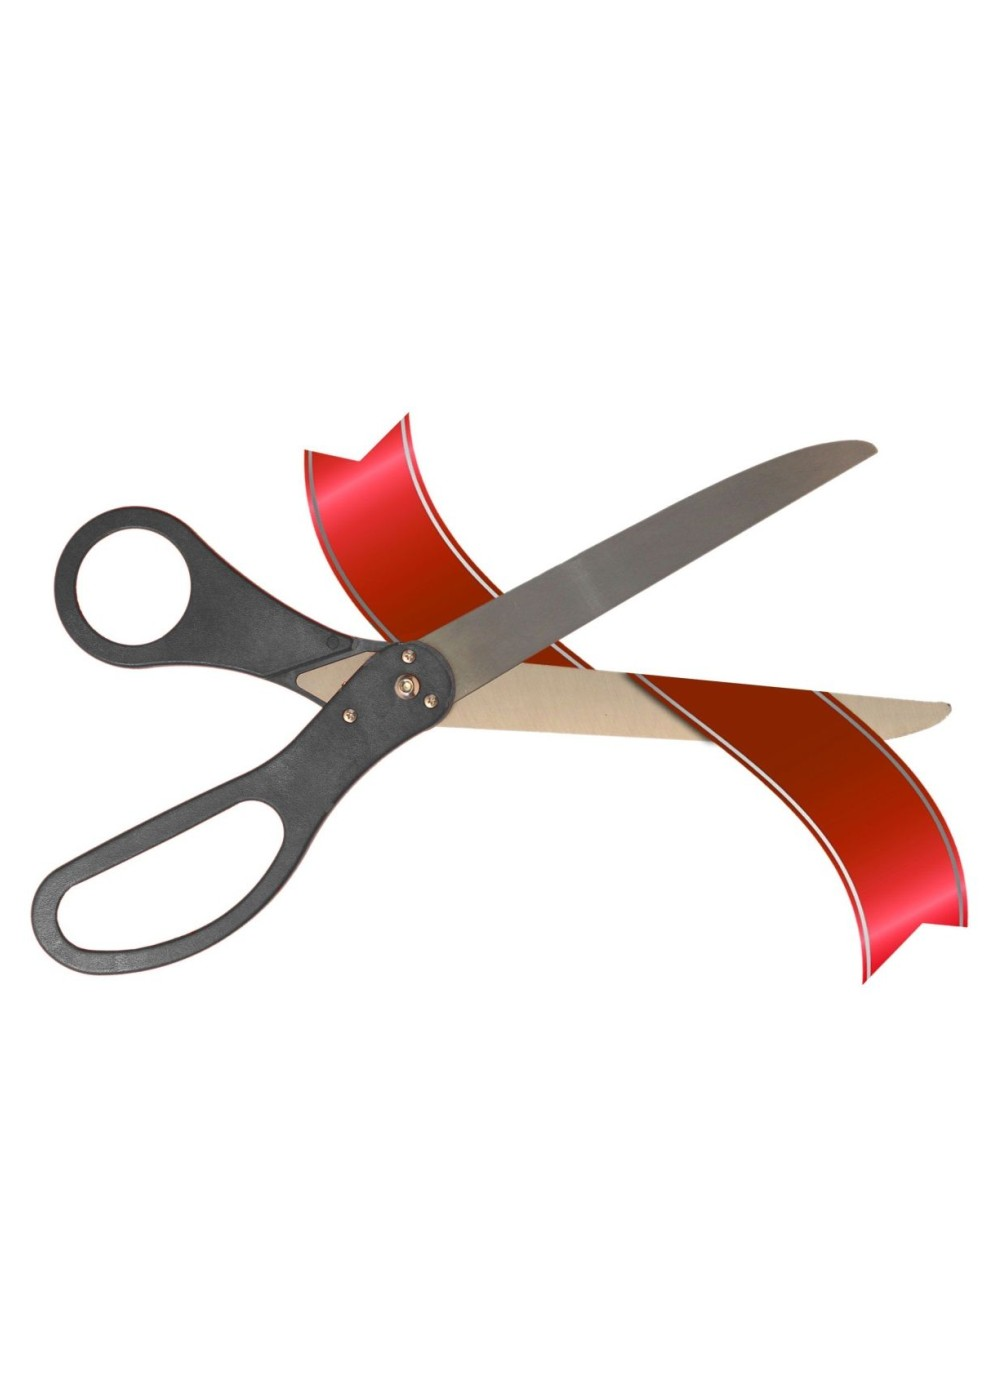 25 Inch Long Black Handle Ceremonial Ribbon Cutting Scissors